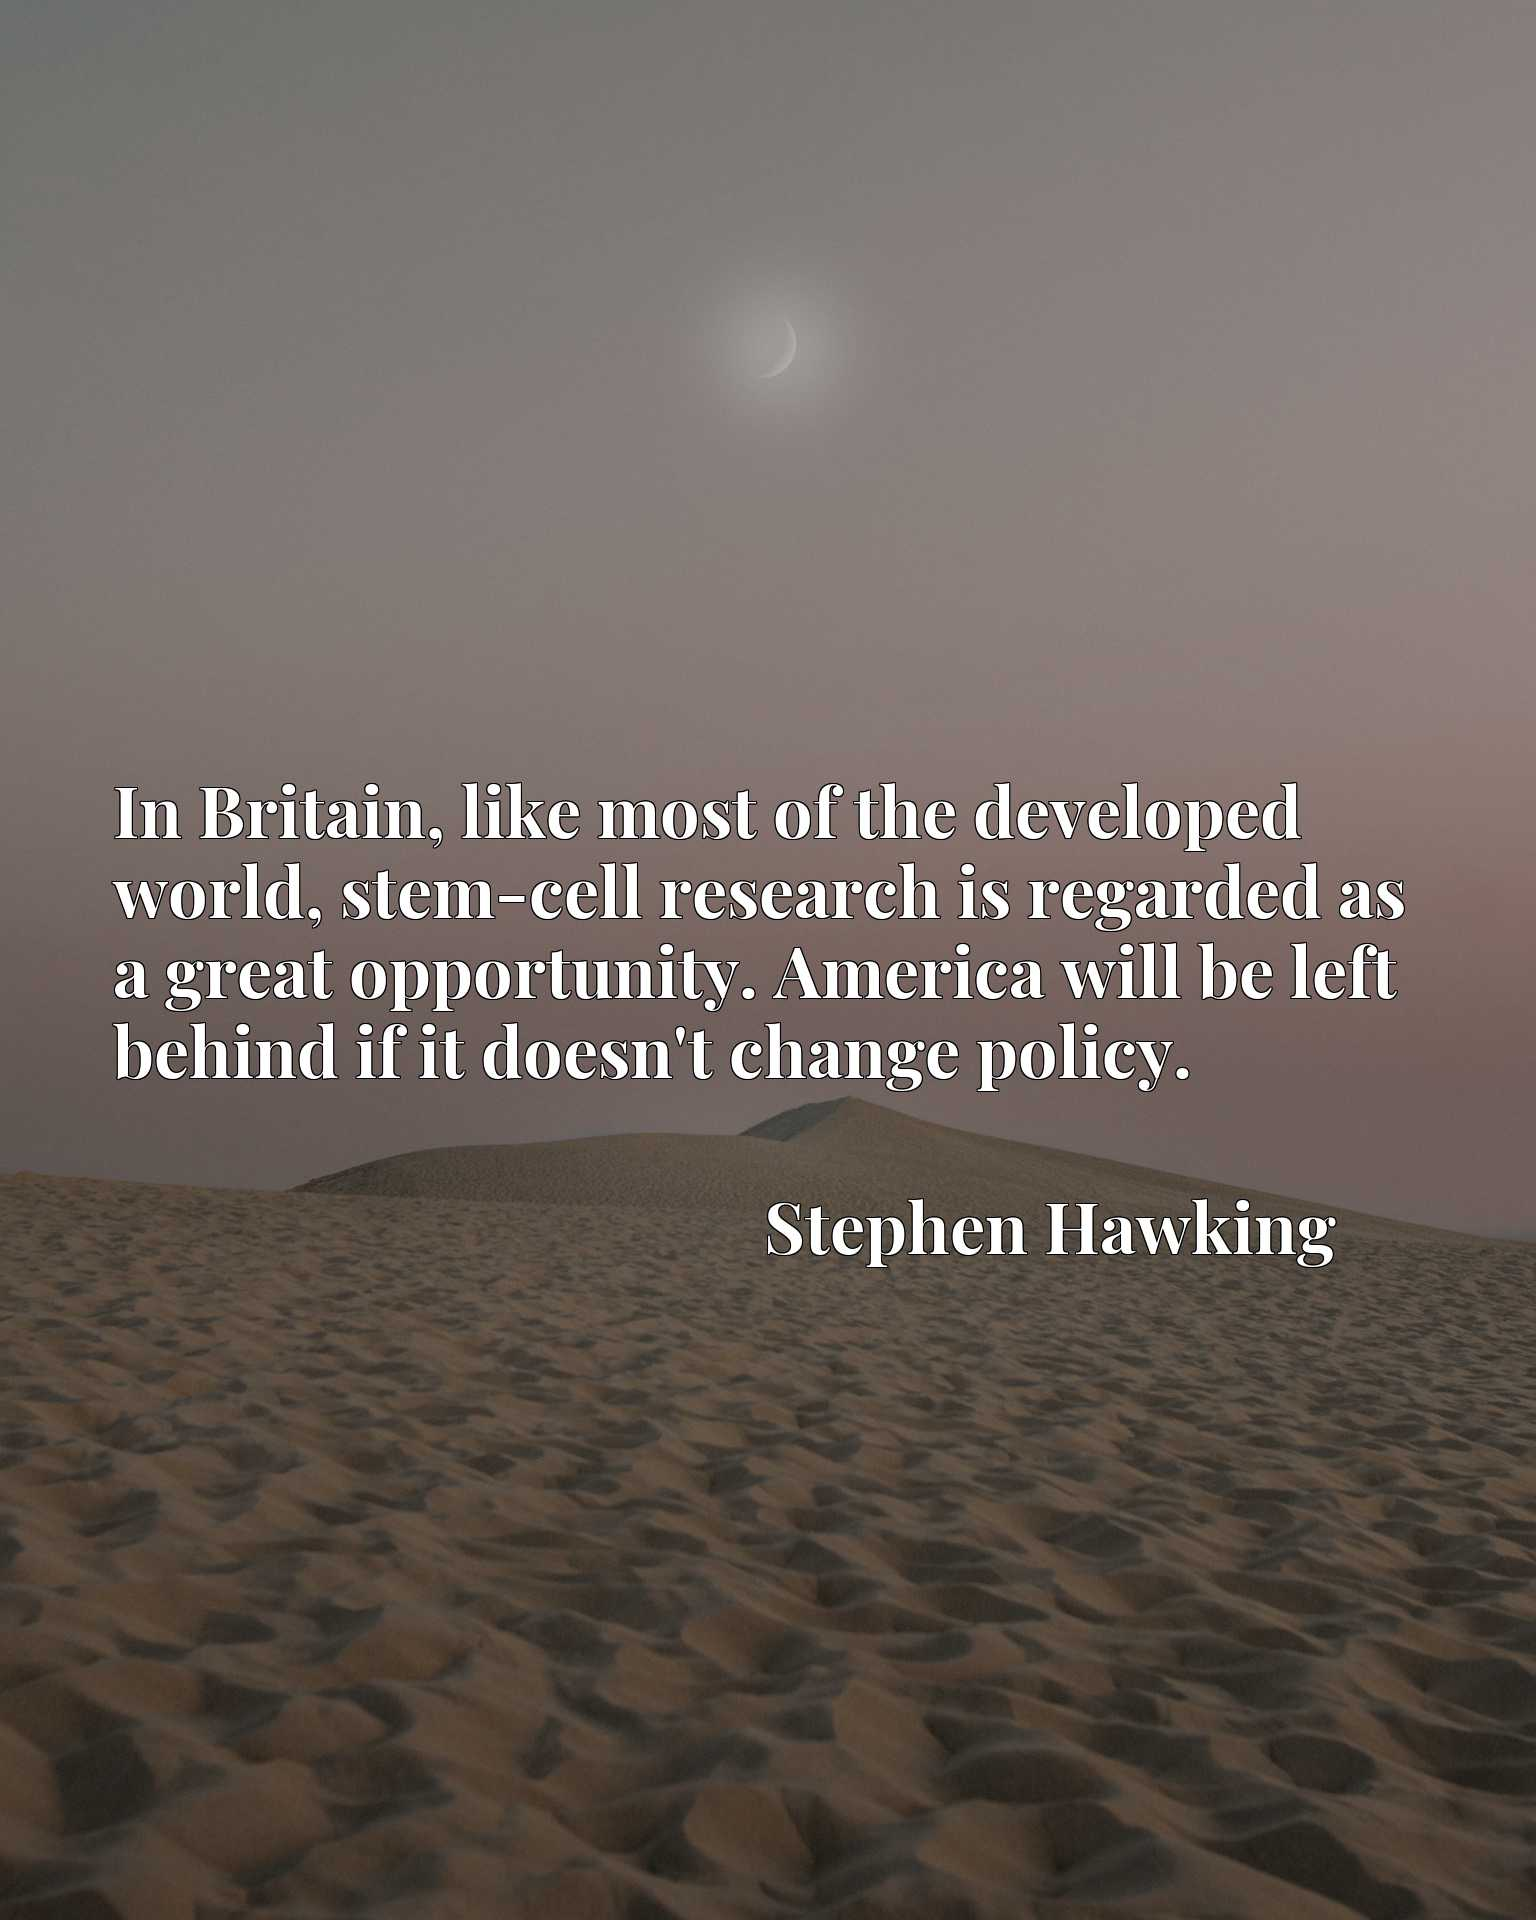 In Britain, like most of the developed world, stem-cell research is regarded as a great opportunity. America will be left behind if it doesn't change policy.